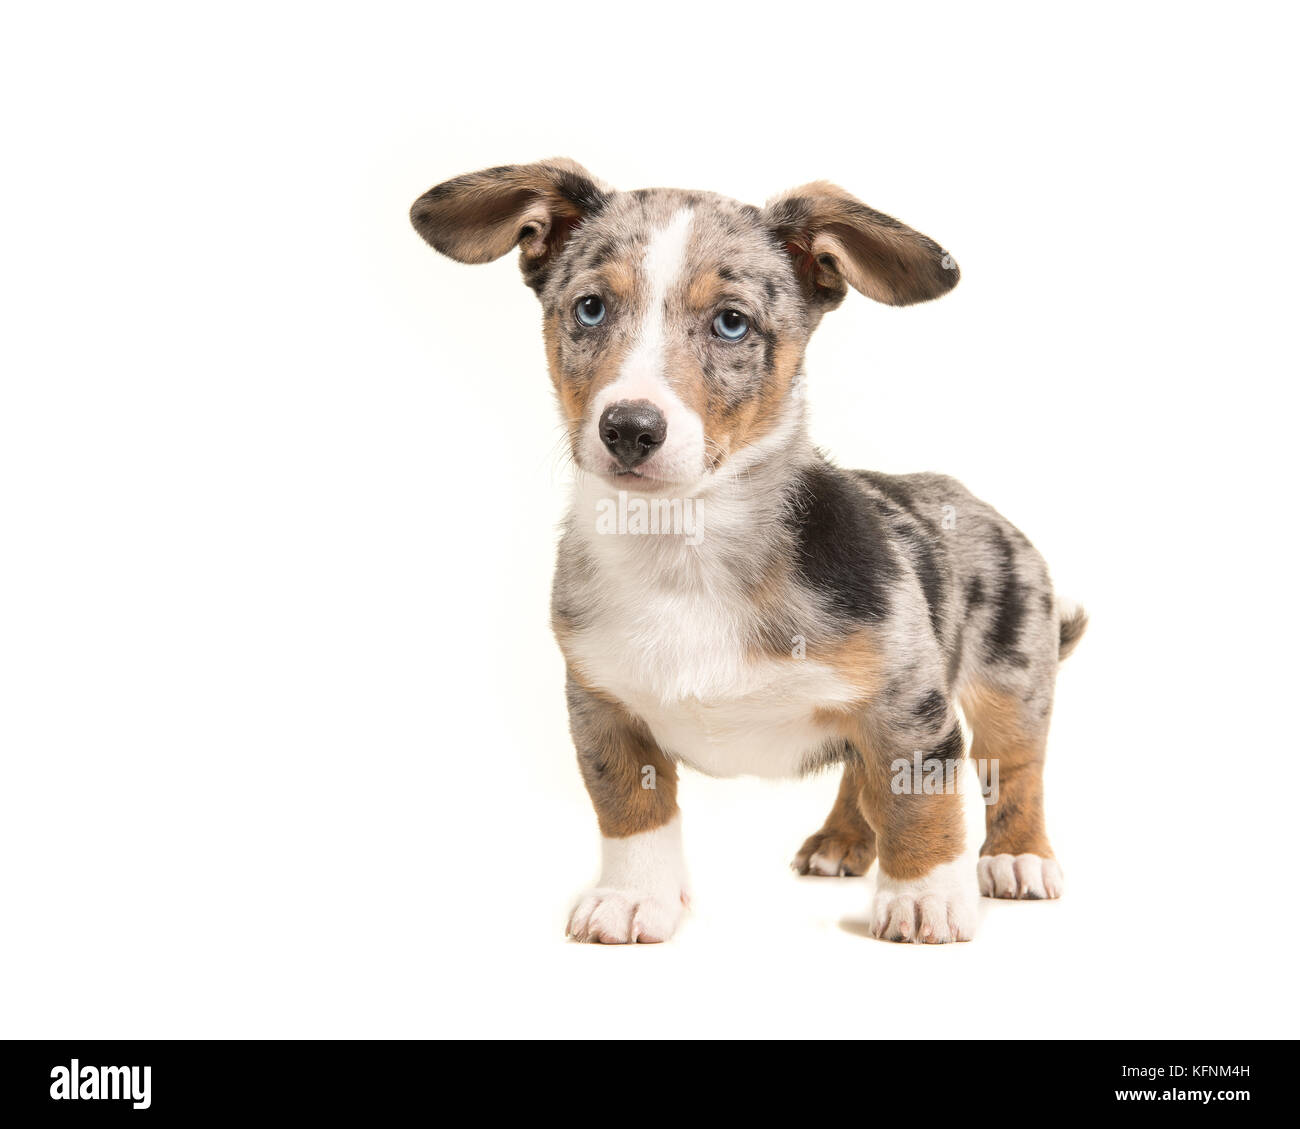 Cute Blue Merle Welsh Corgi Puppy With Blue Eyes And Hanging Ears Stock Photo Alamy